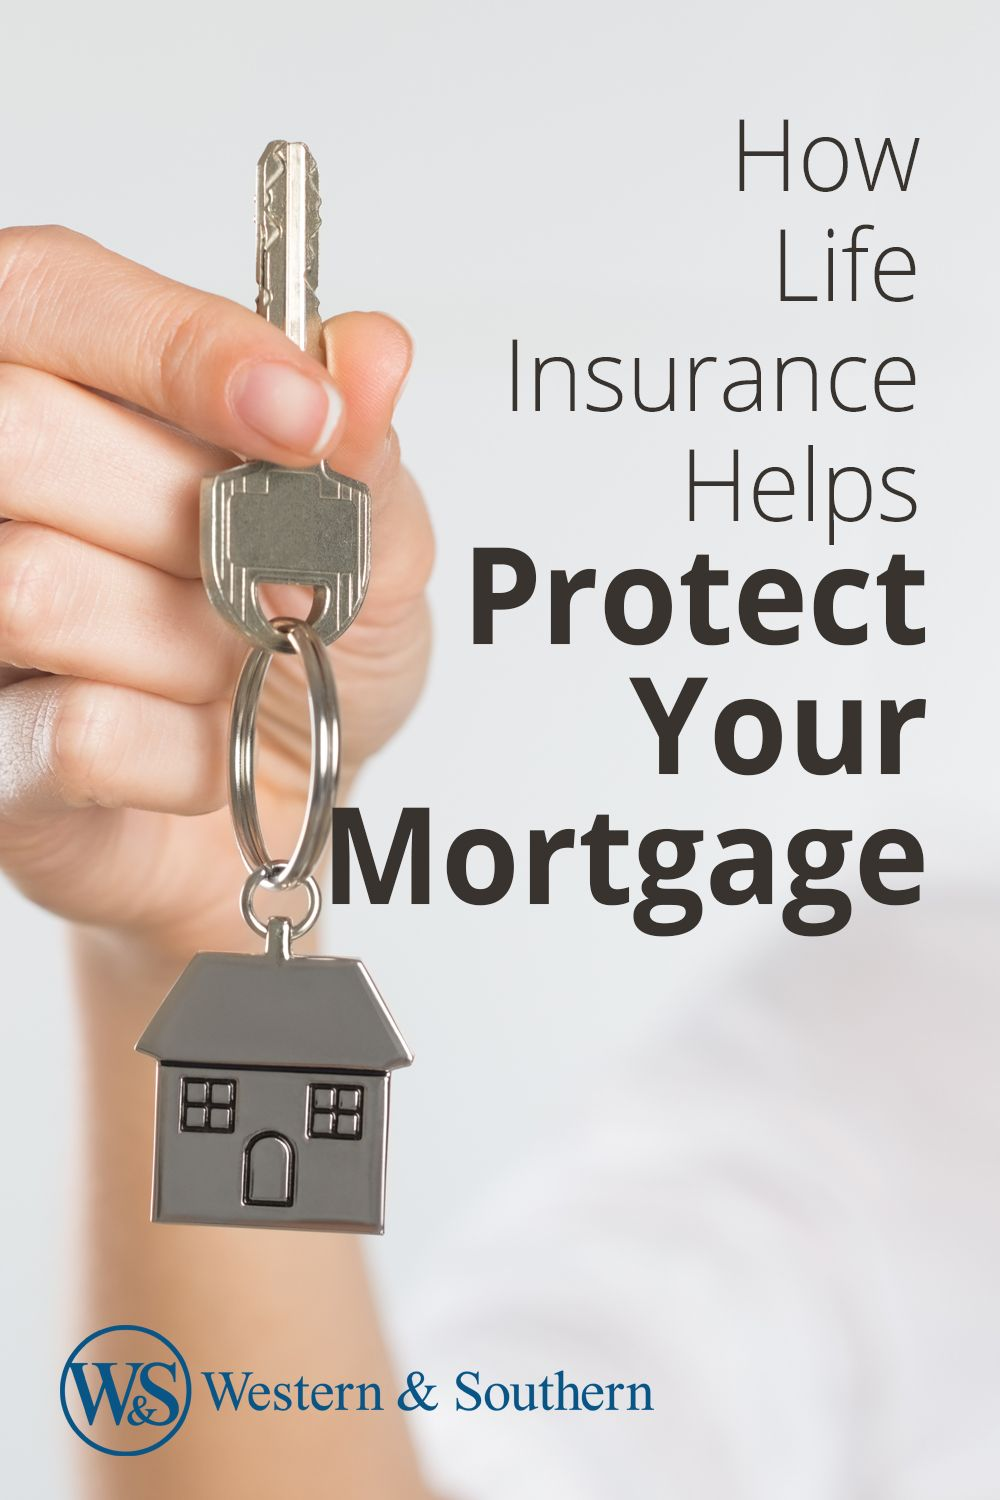 Help protect your mortgage with a life insurance policy ...